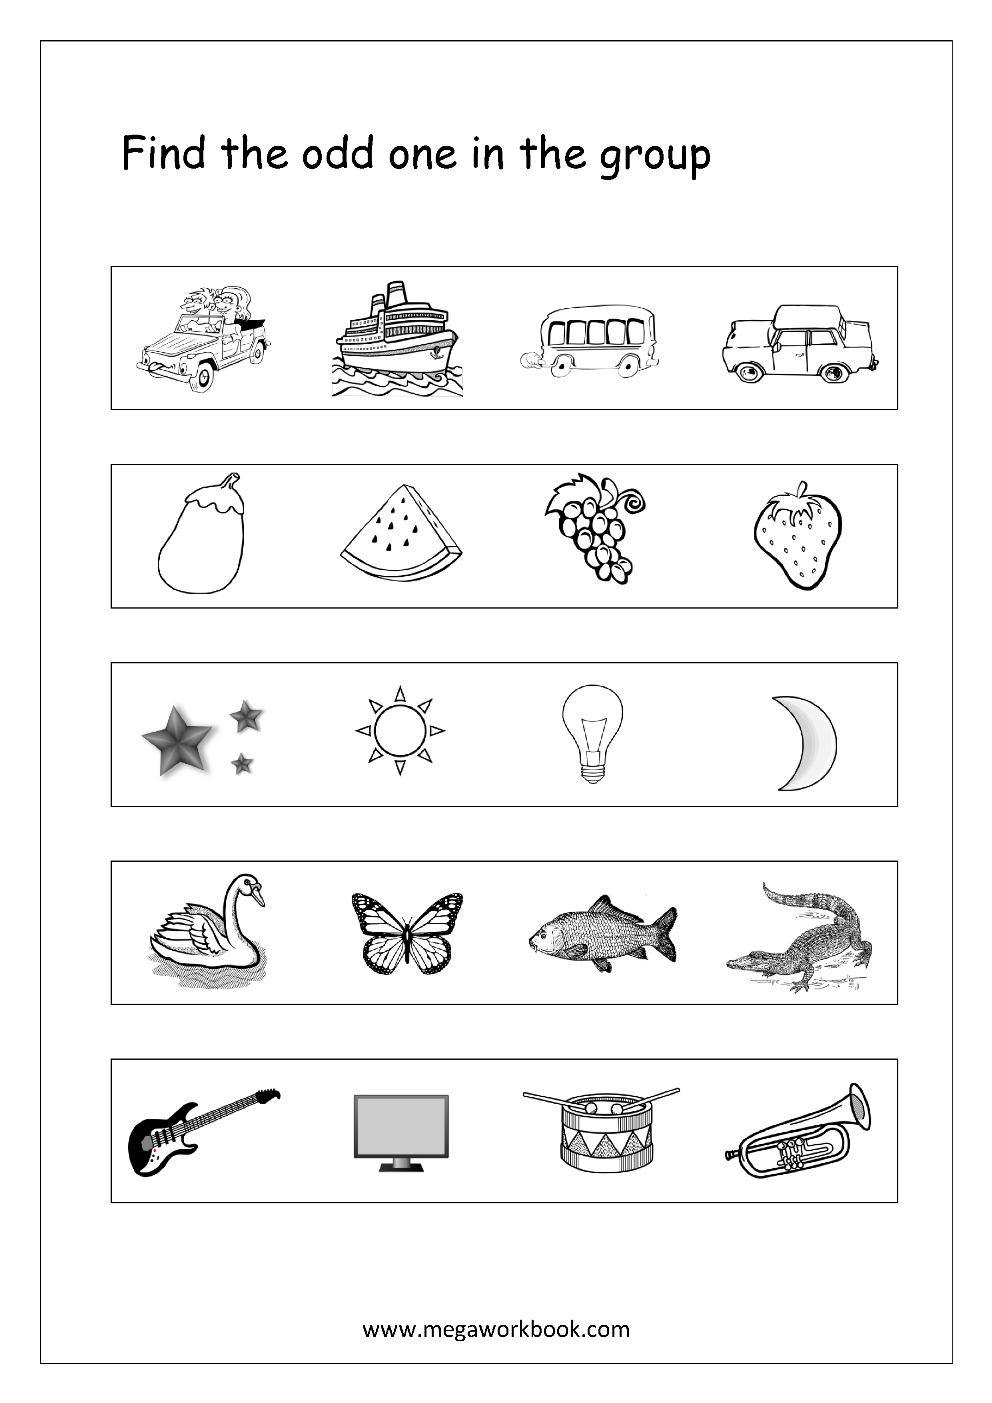 Odd One Out Preschool worksheets, Reading worksheets